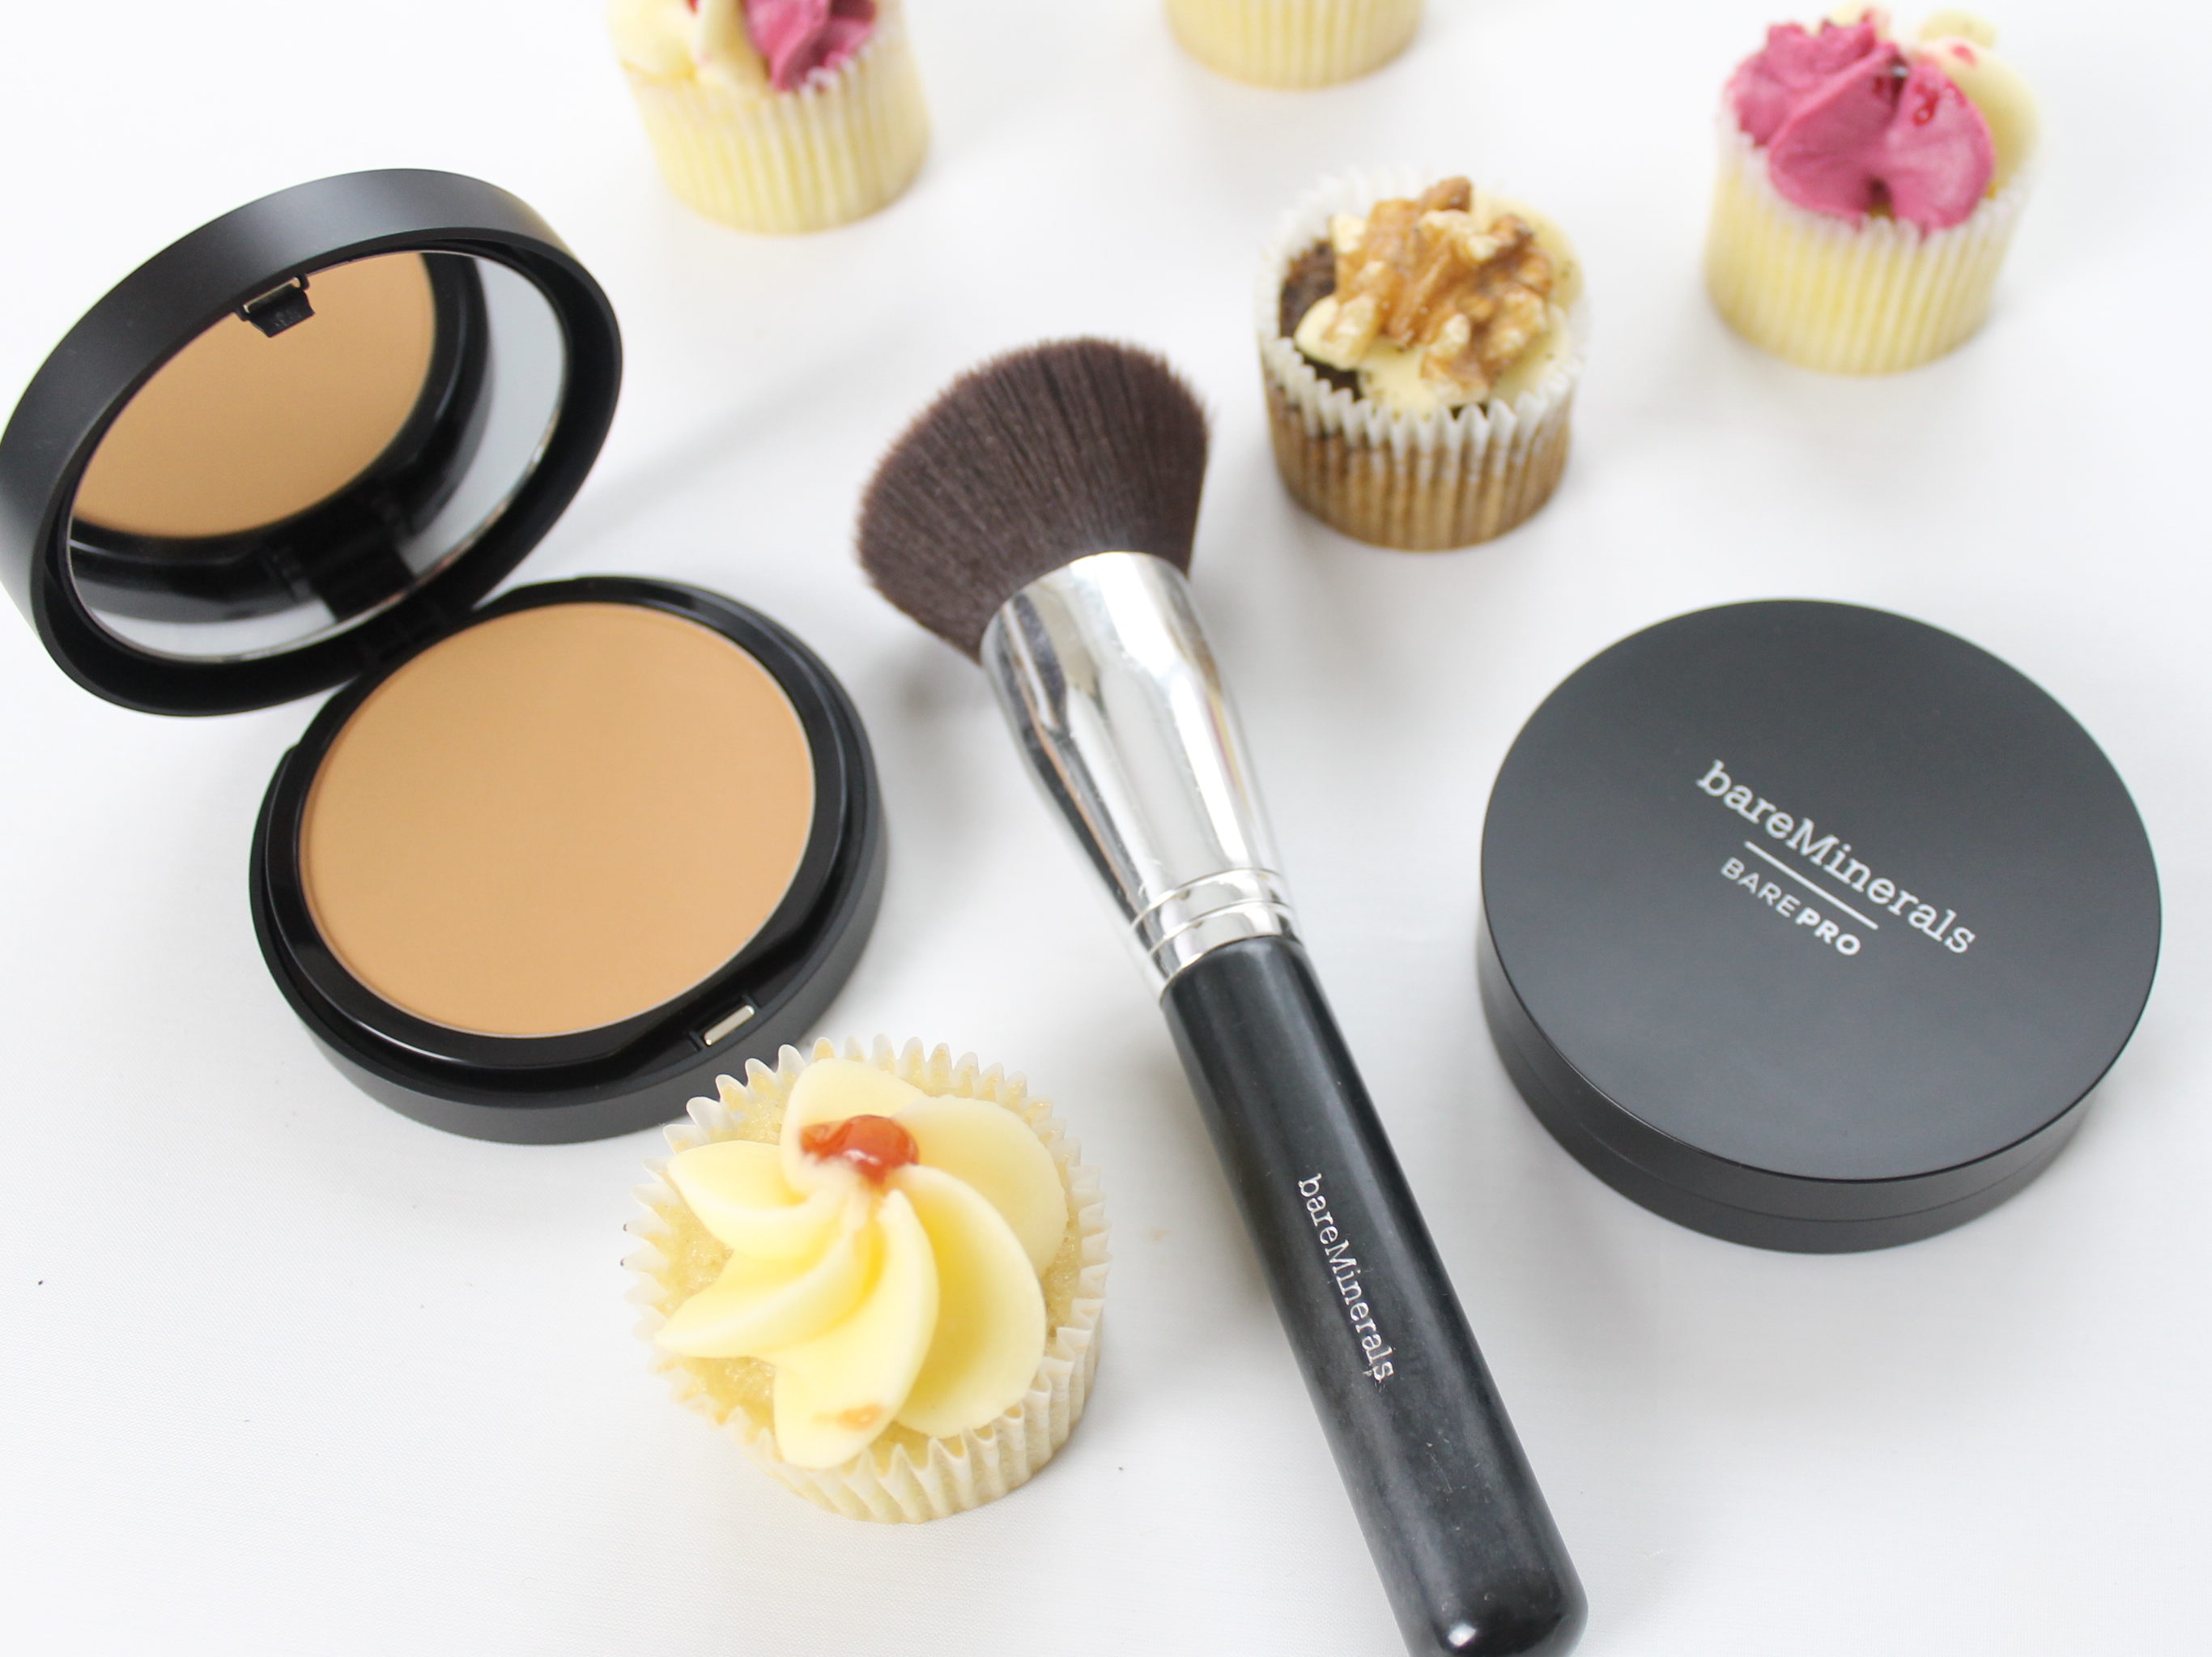 bareMinerals Bare Pro Foundation Review - Through Mona's Eyes